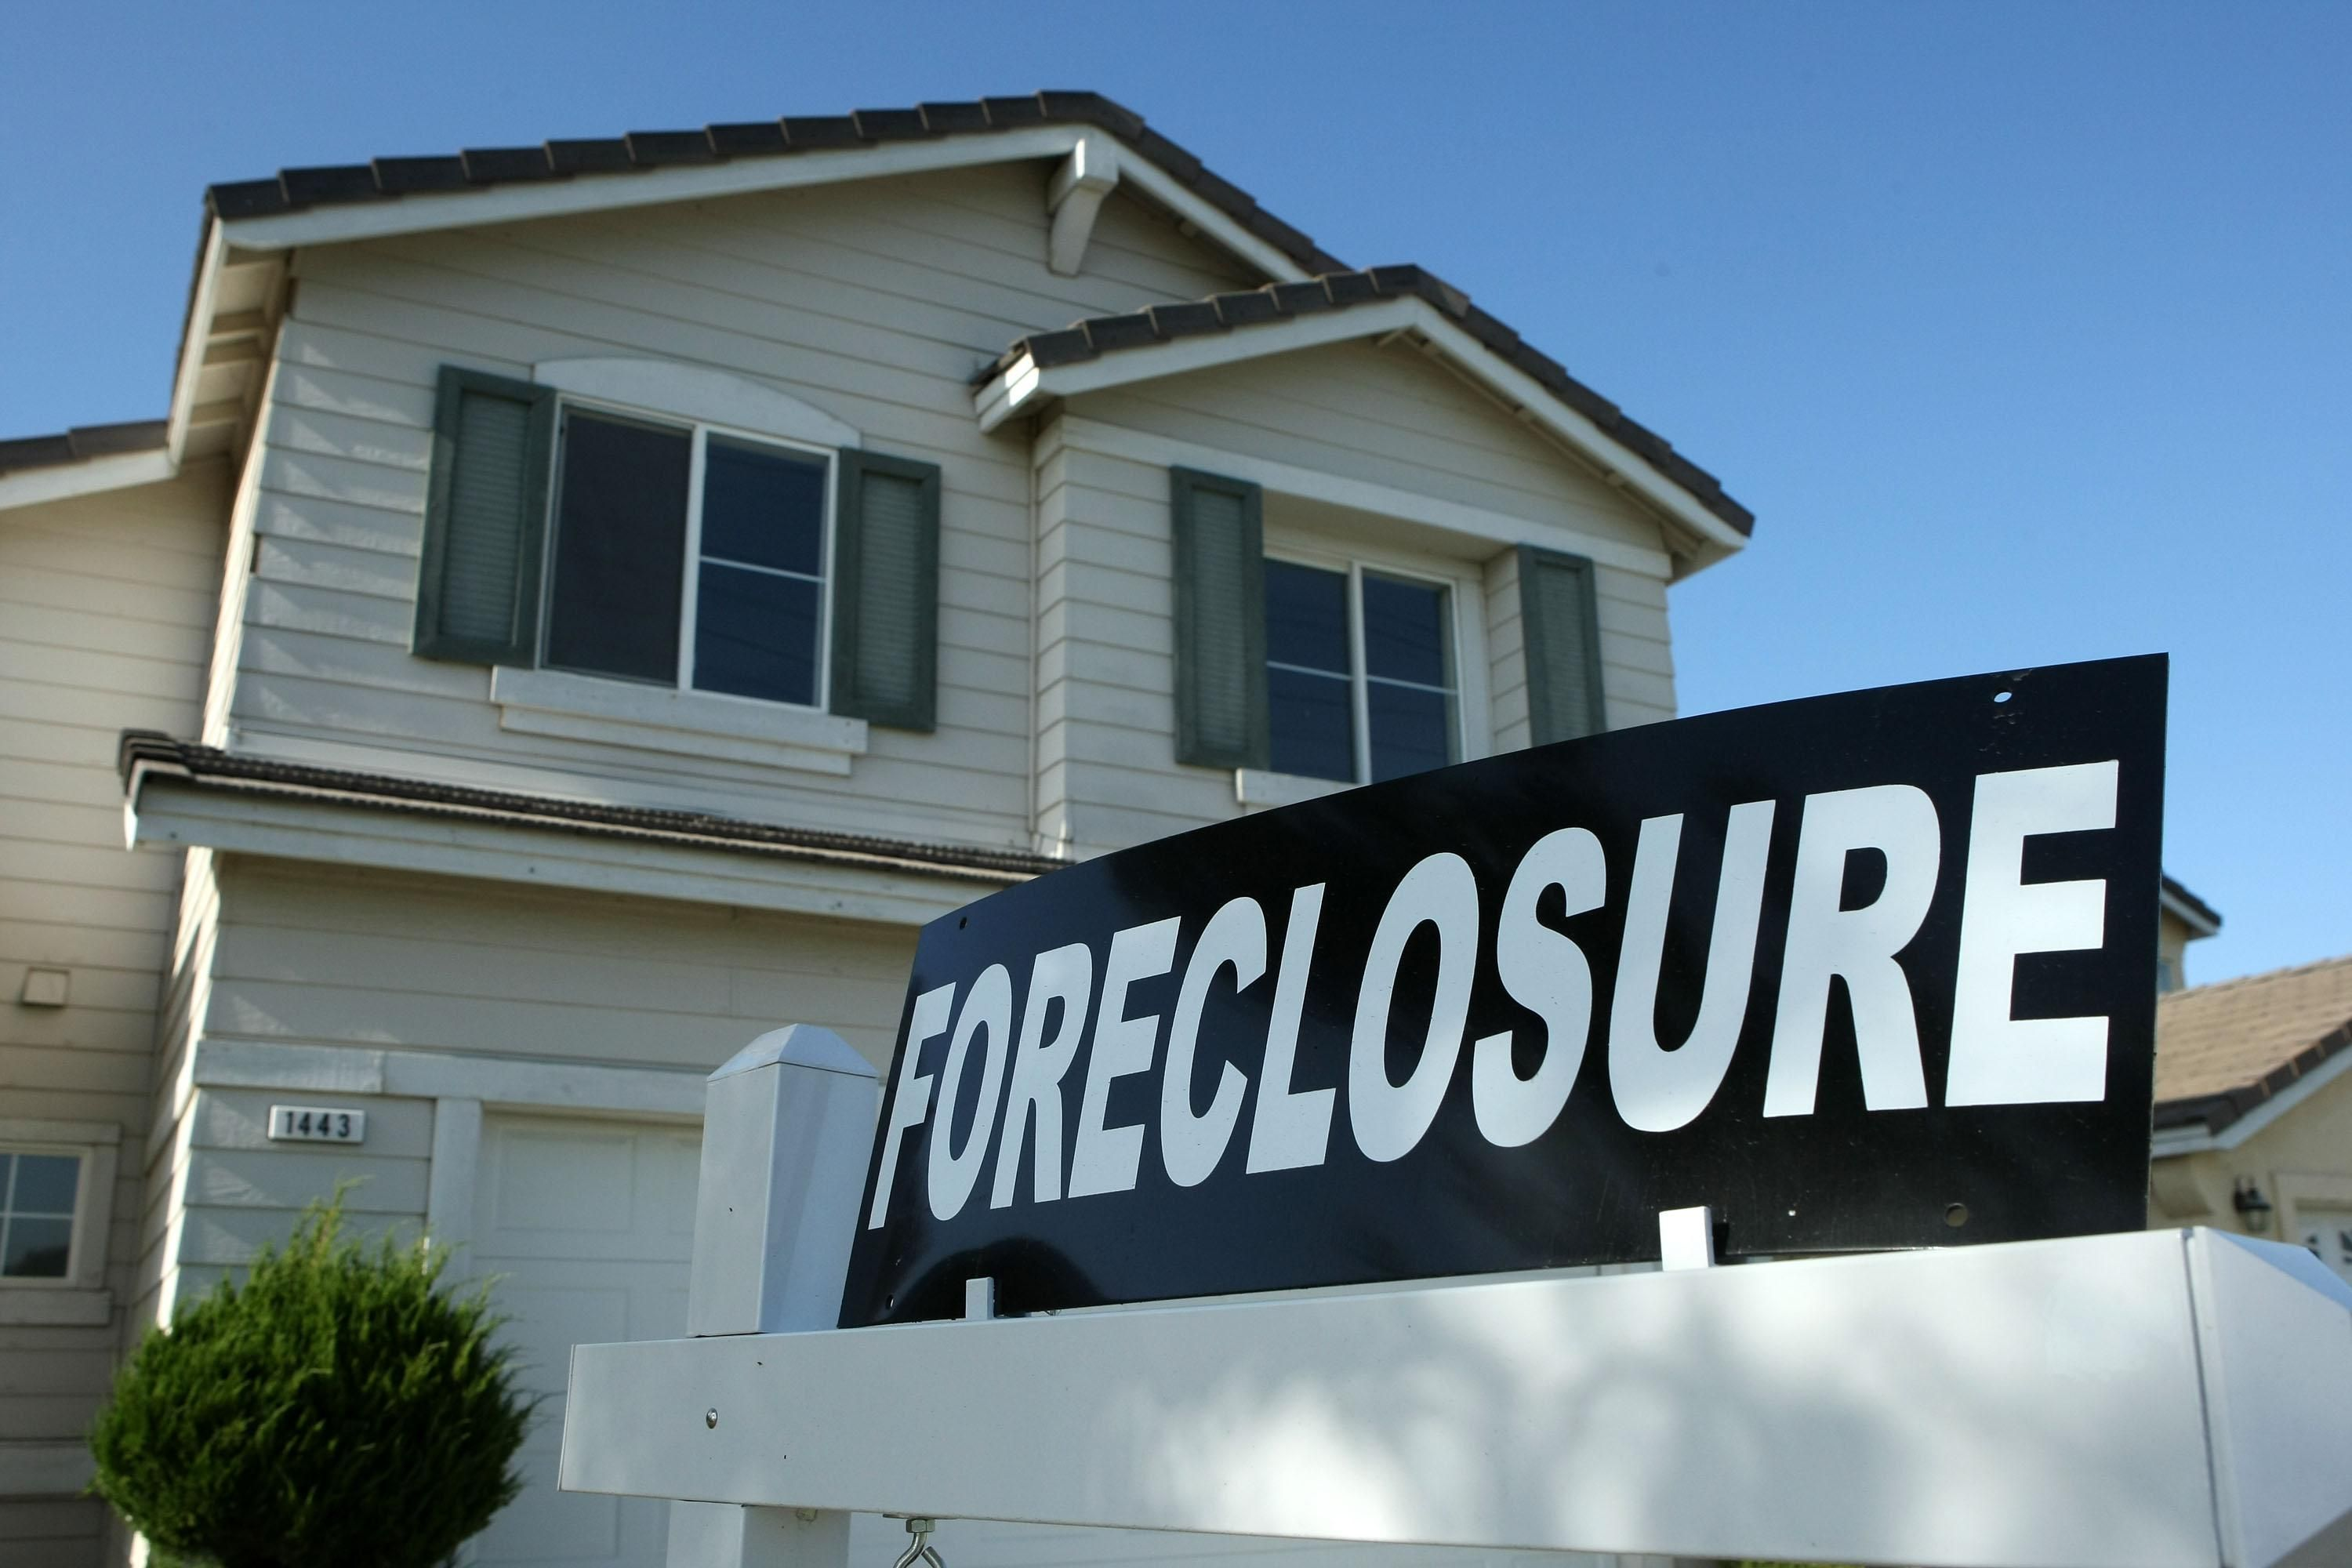 Area Foreclosures